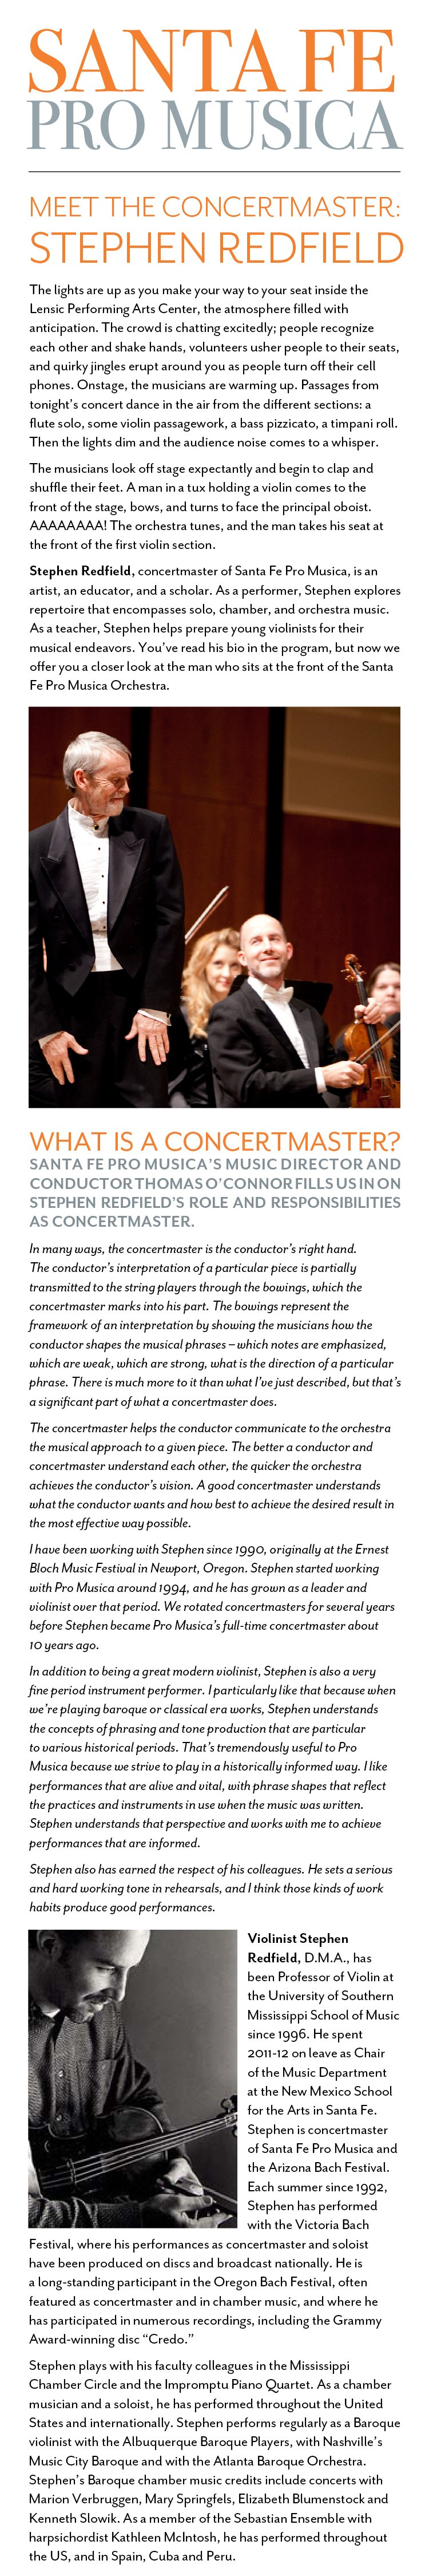 Meet the Concertmaster